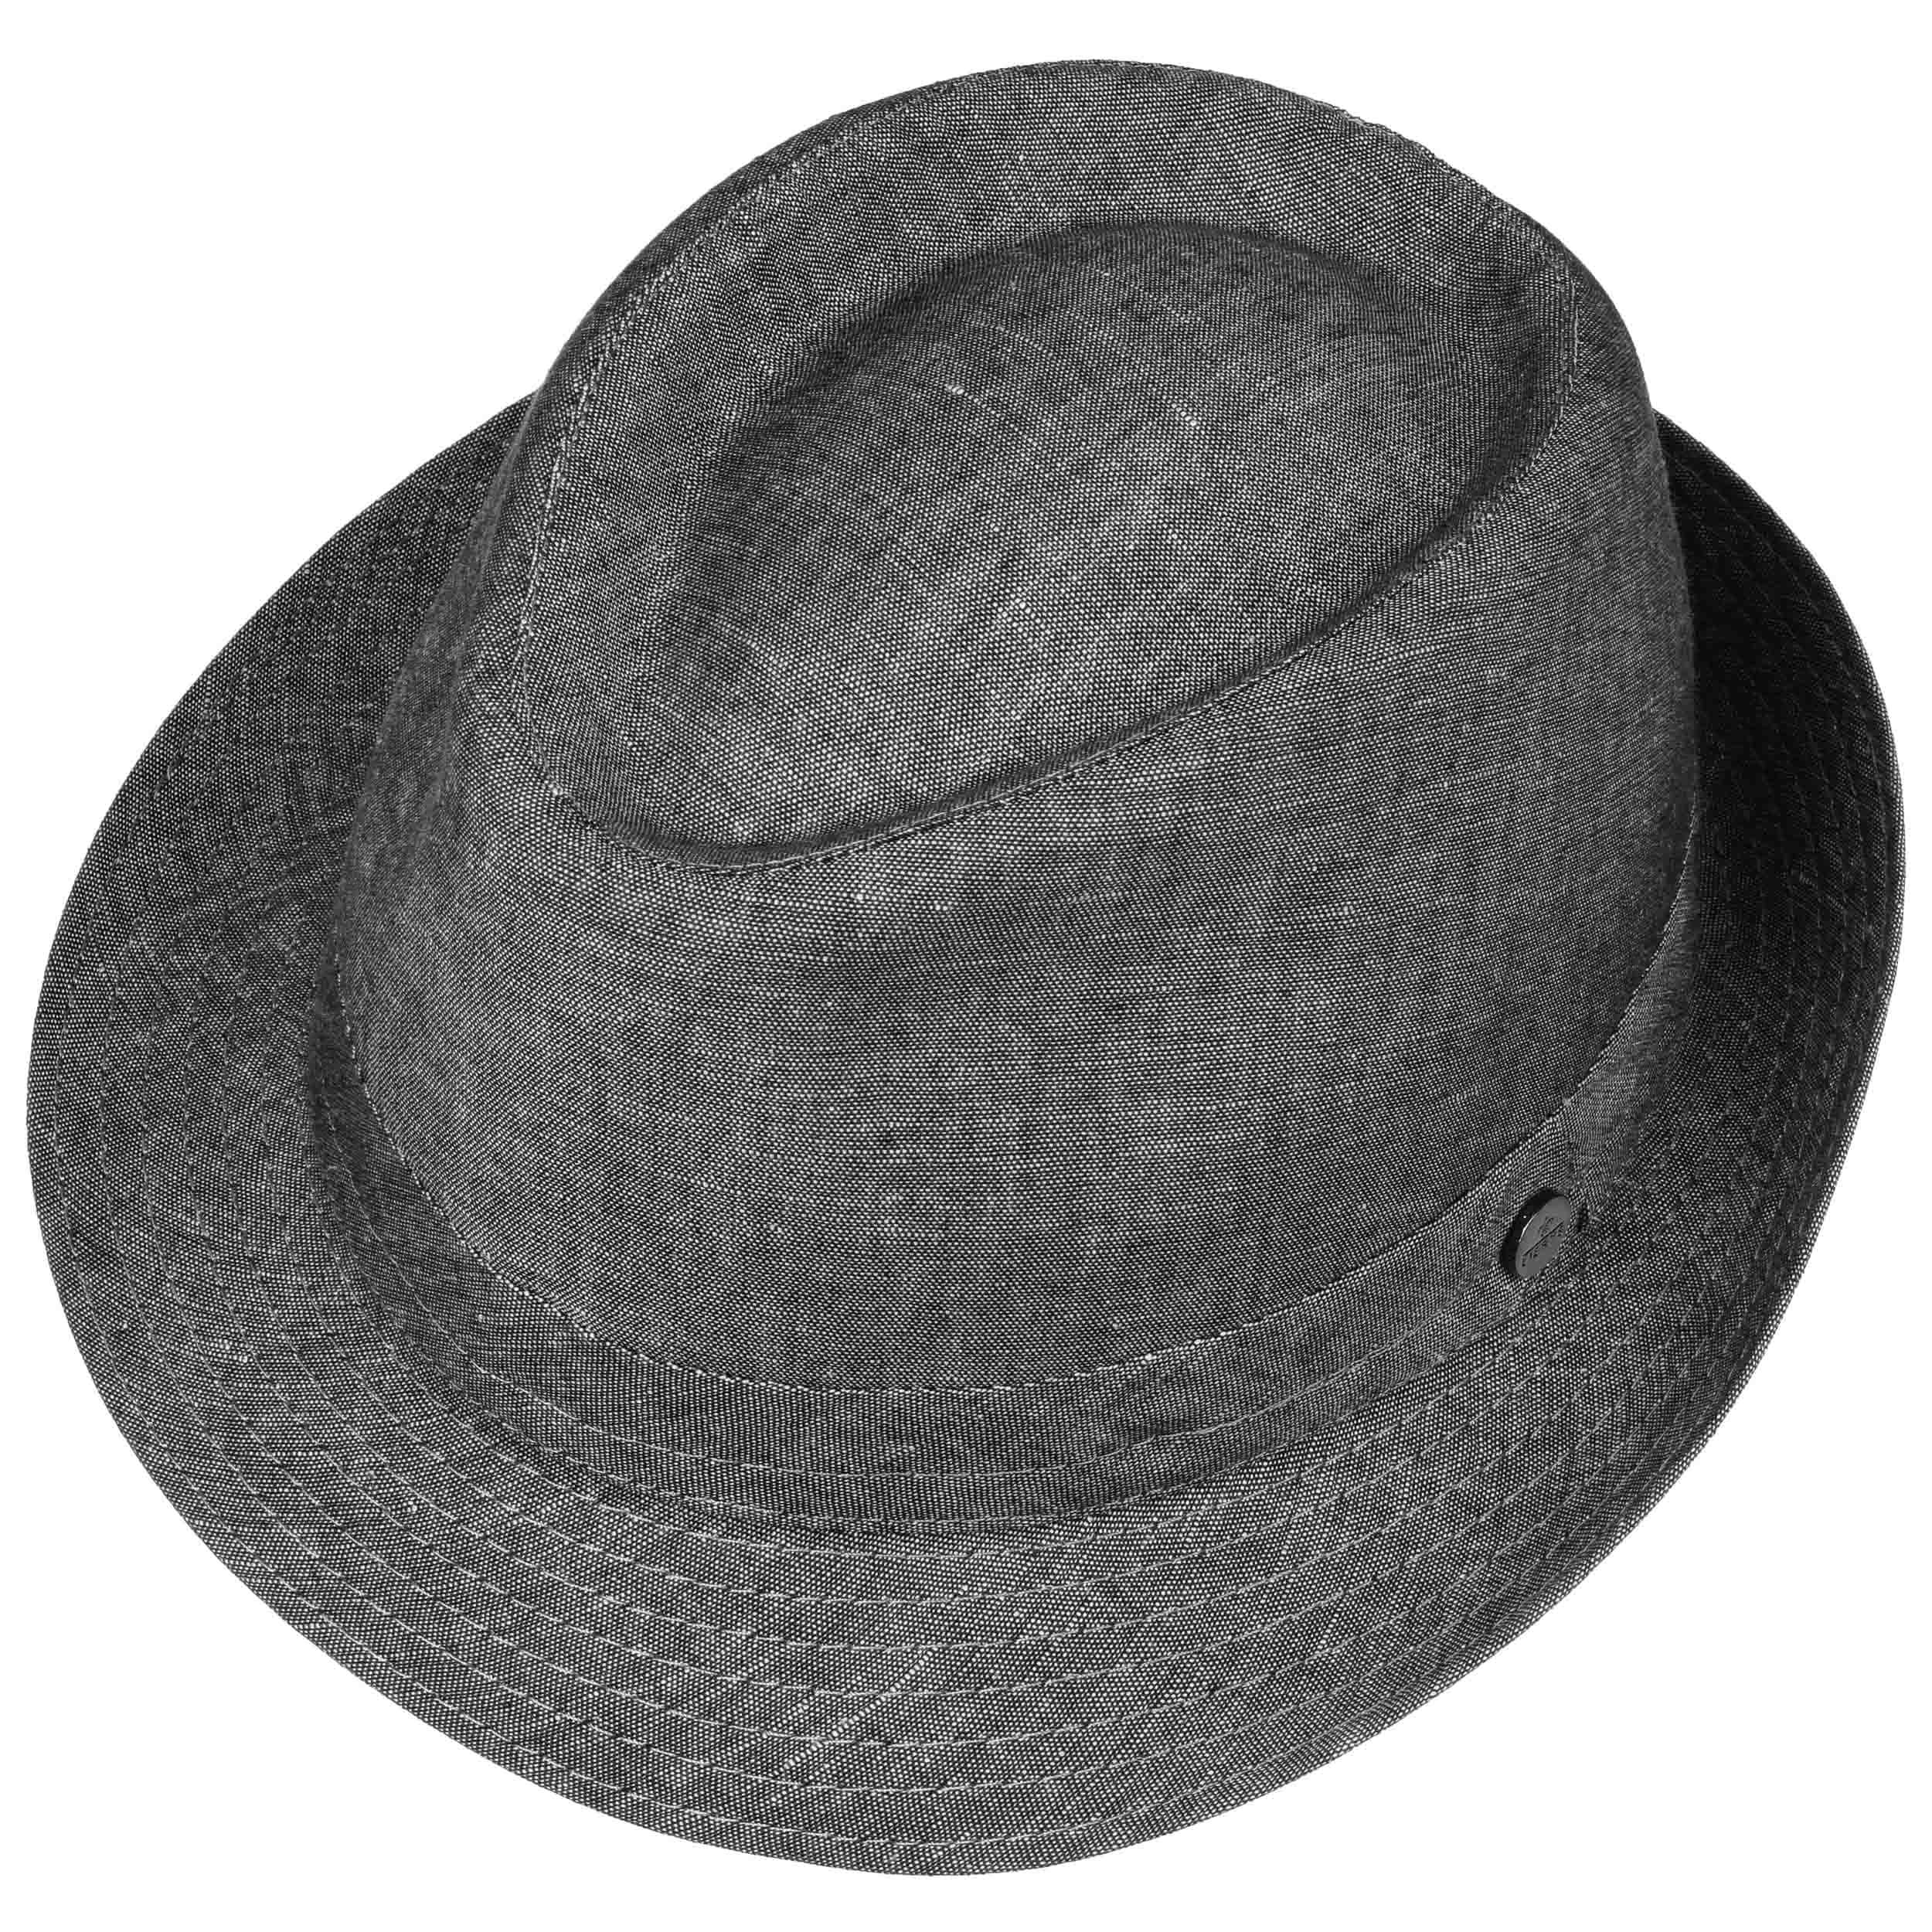 2018 Online Free Shipping Best Store To Get Misto Lino Linen Trilby Hat by Lierys Trilby hats Lierys Outlet Limited Edition R9Si4ns1C